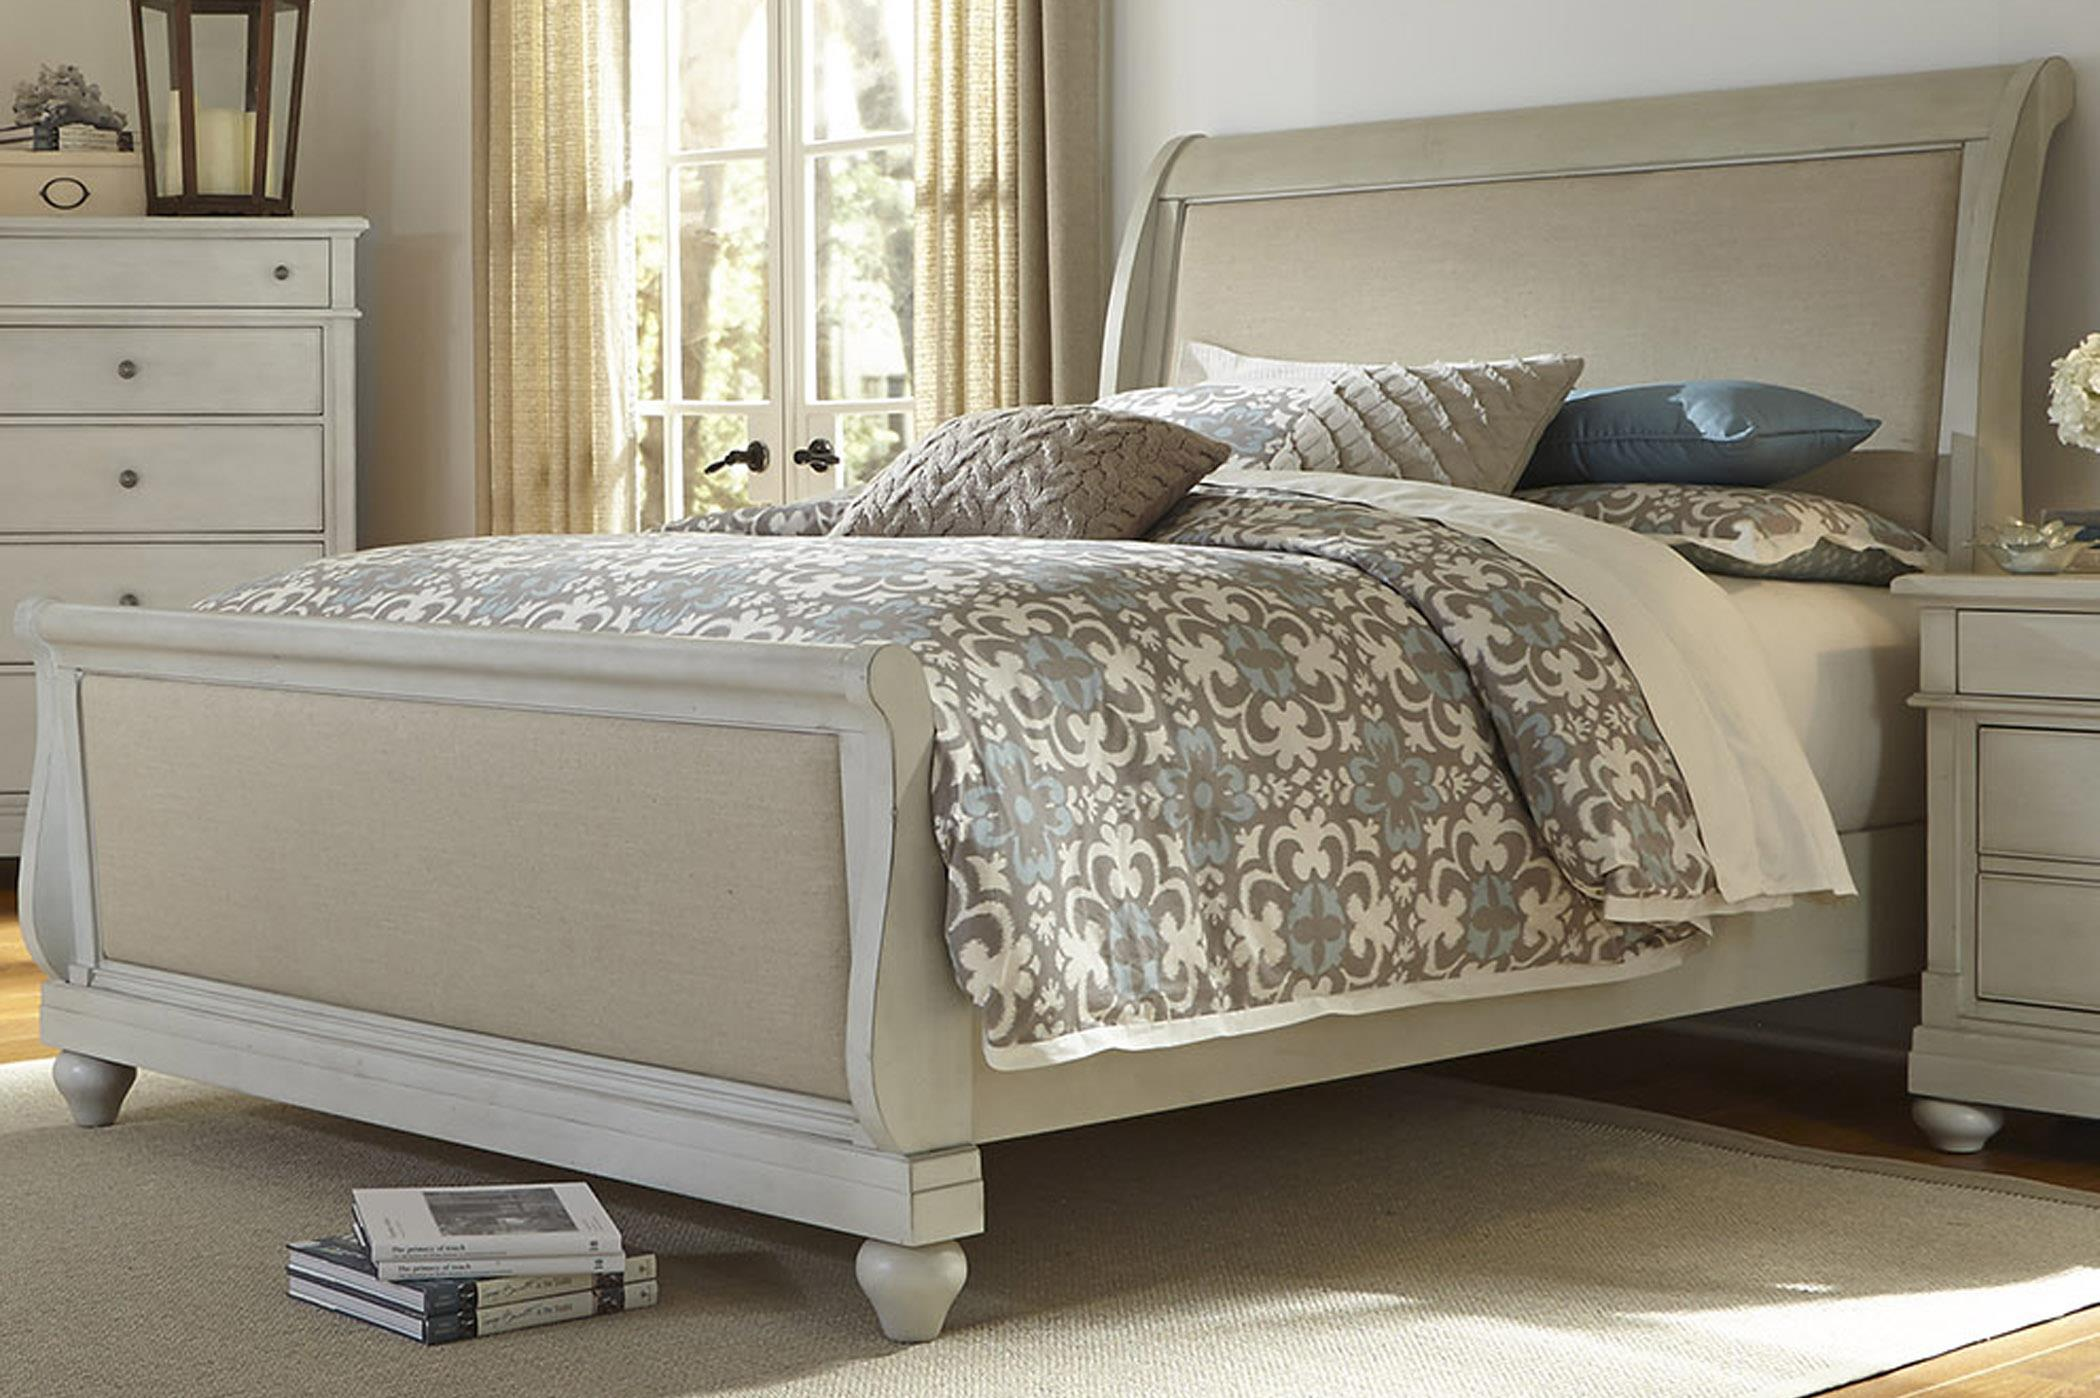 Liberty Furniture Harbor View King Sleigh Bed - Item Number: 731-BR-KSL